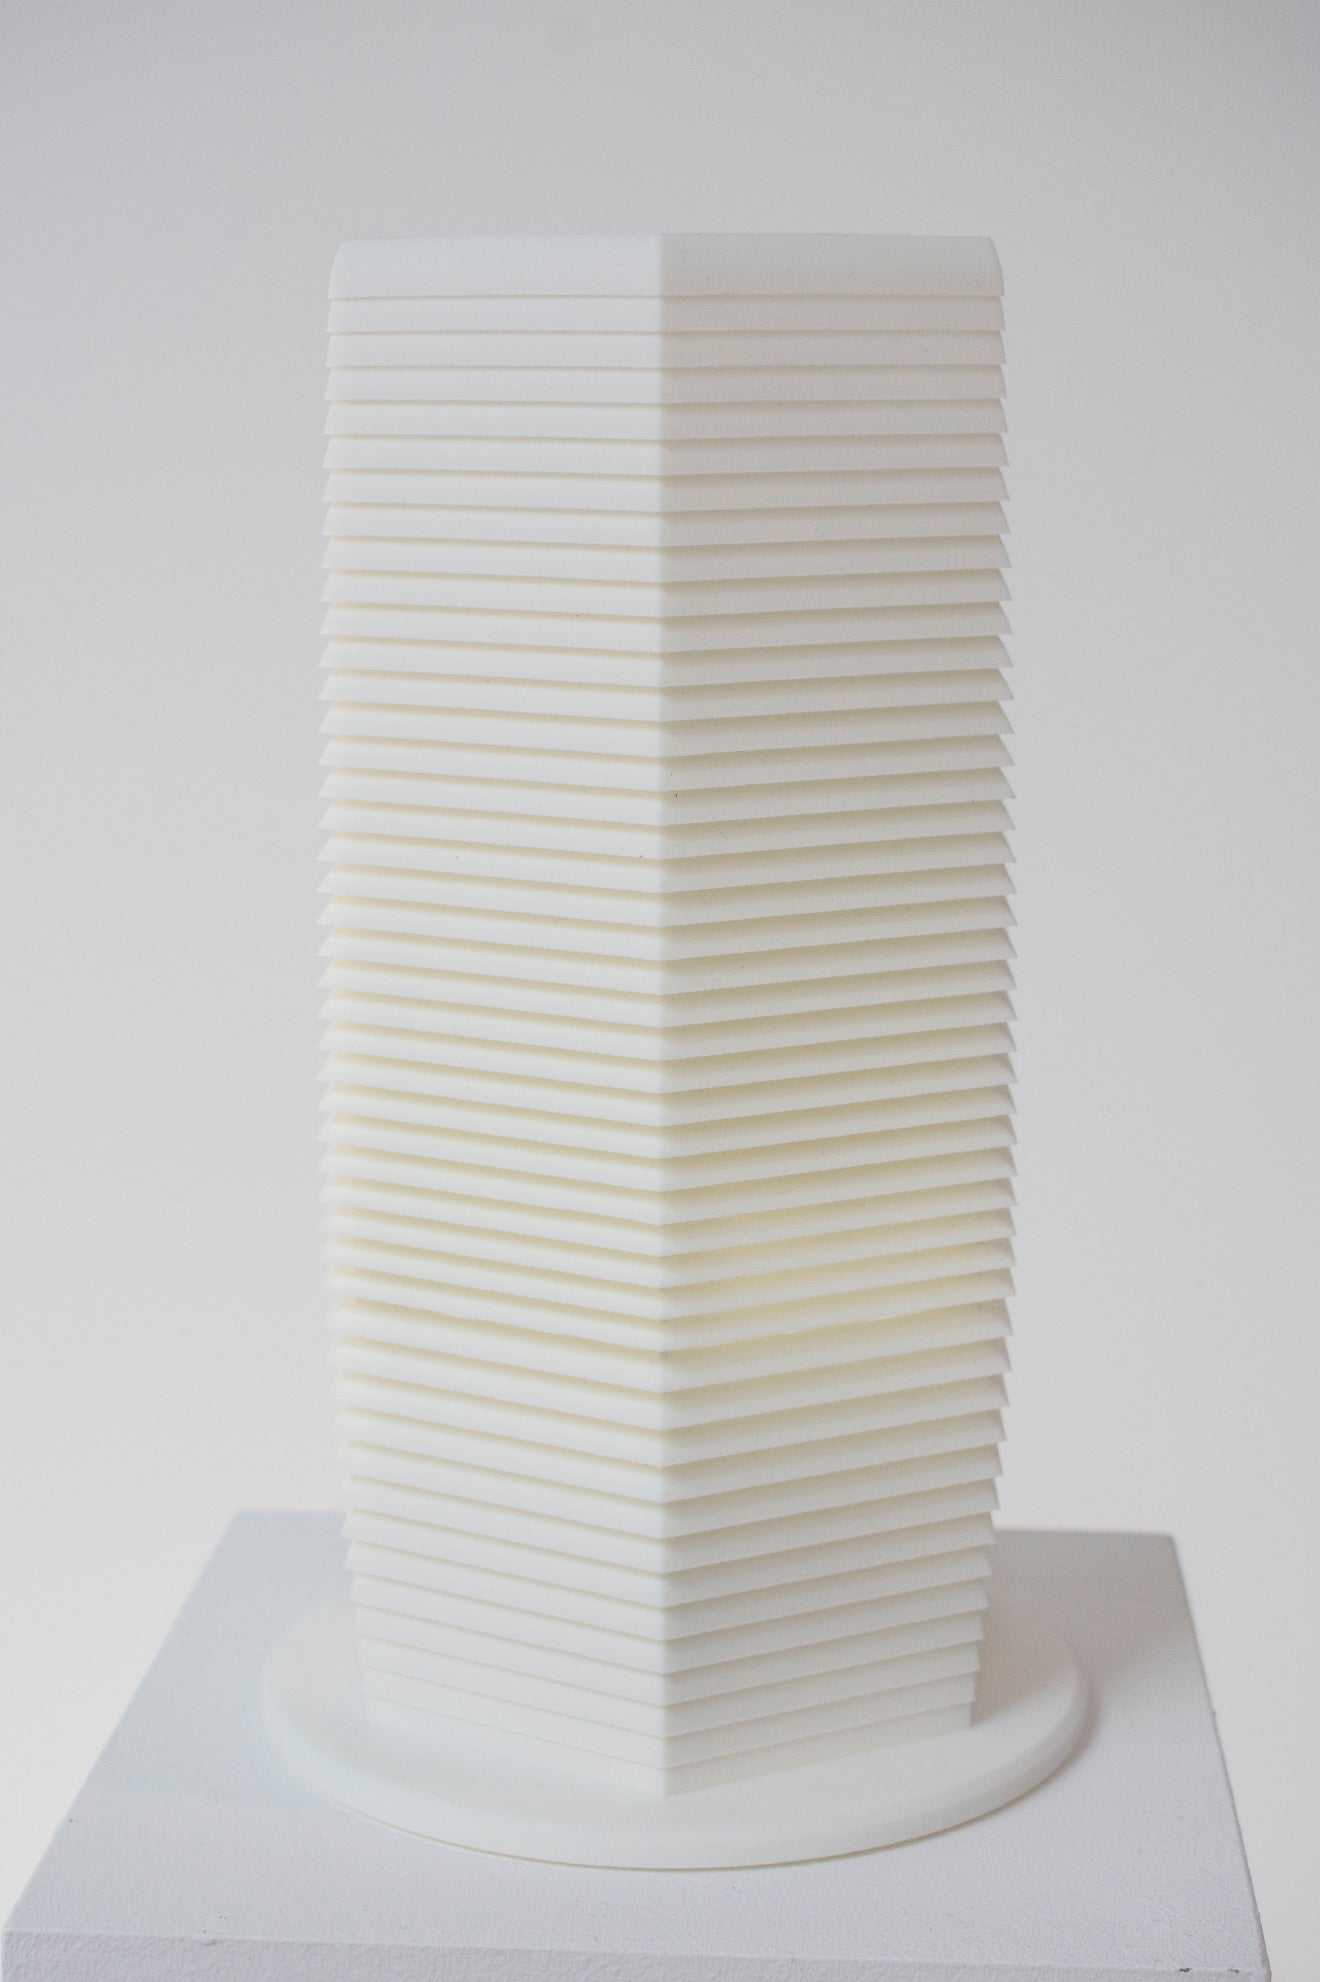 Pollution tower Milan model